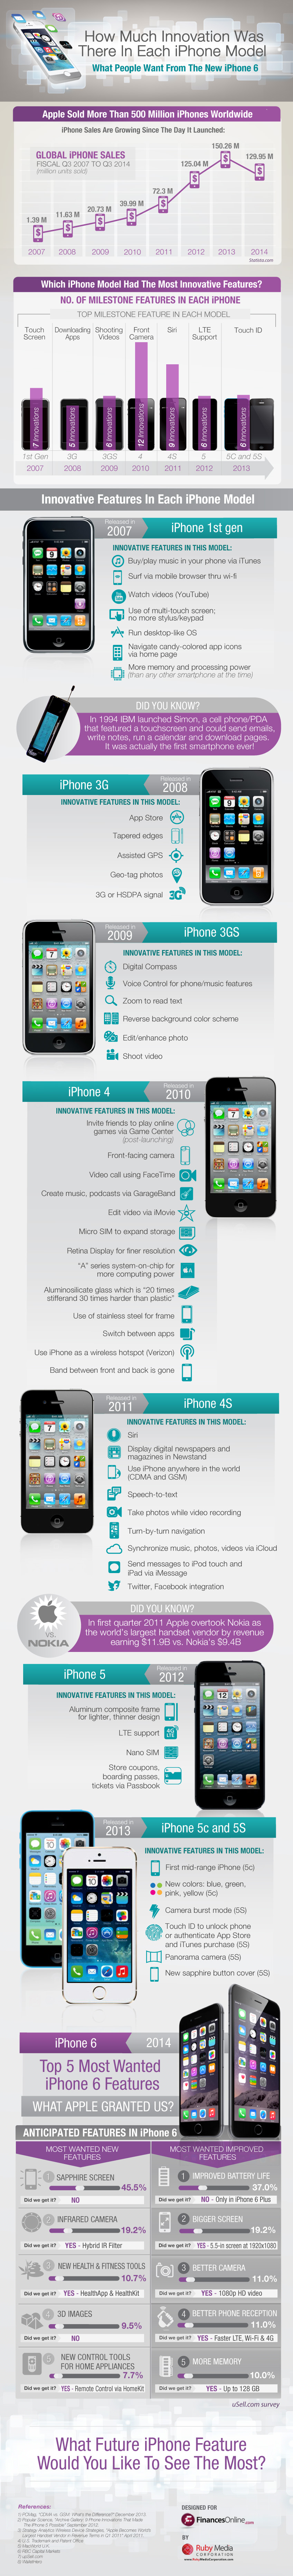 iphone6 infographic